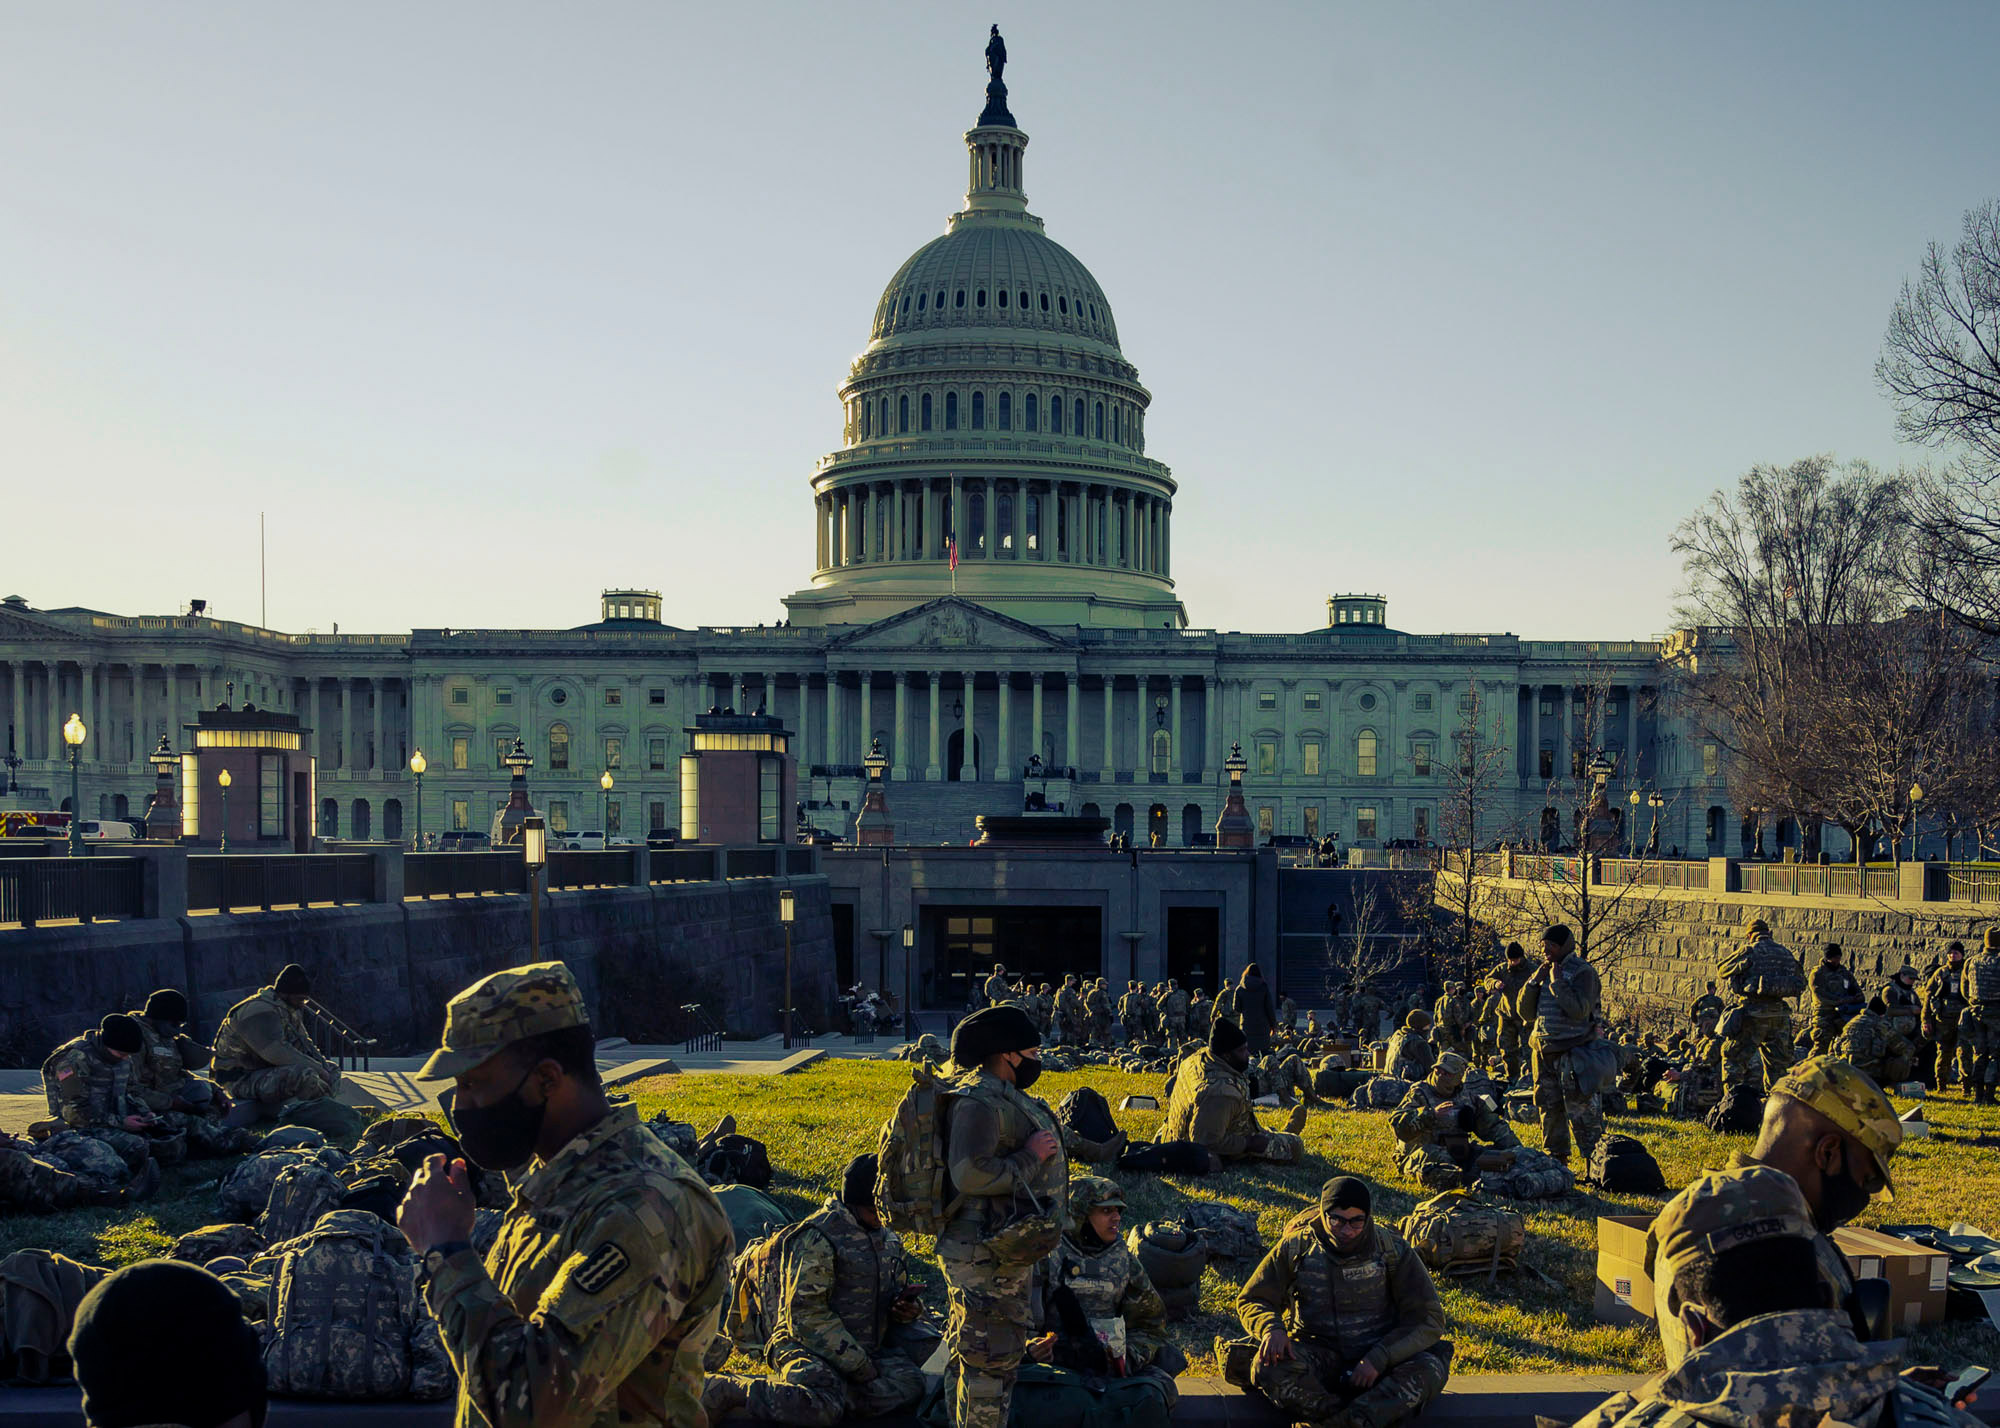 Members of the National Guard outside the Capitol in Washington on Jan. 19, 2021.